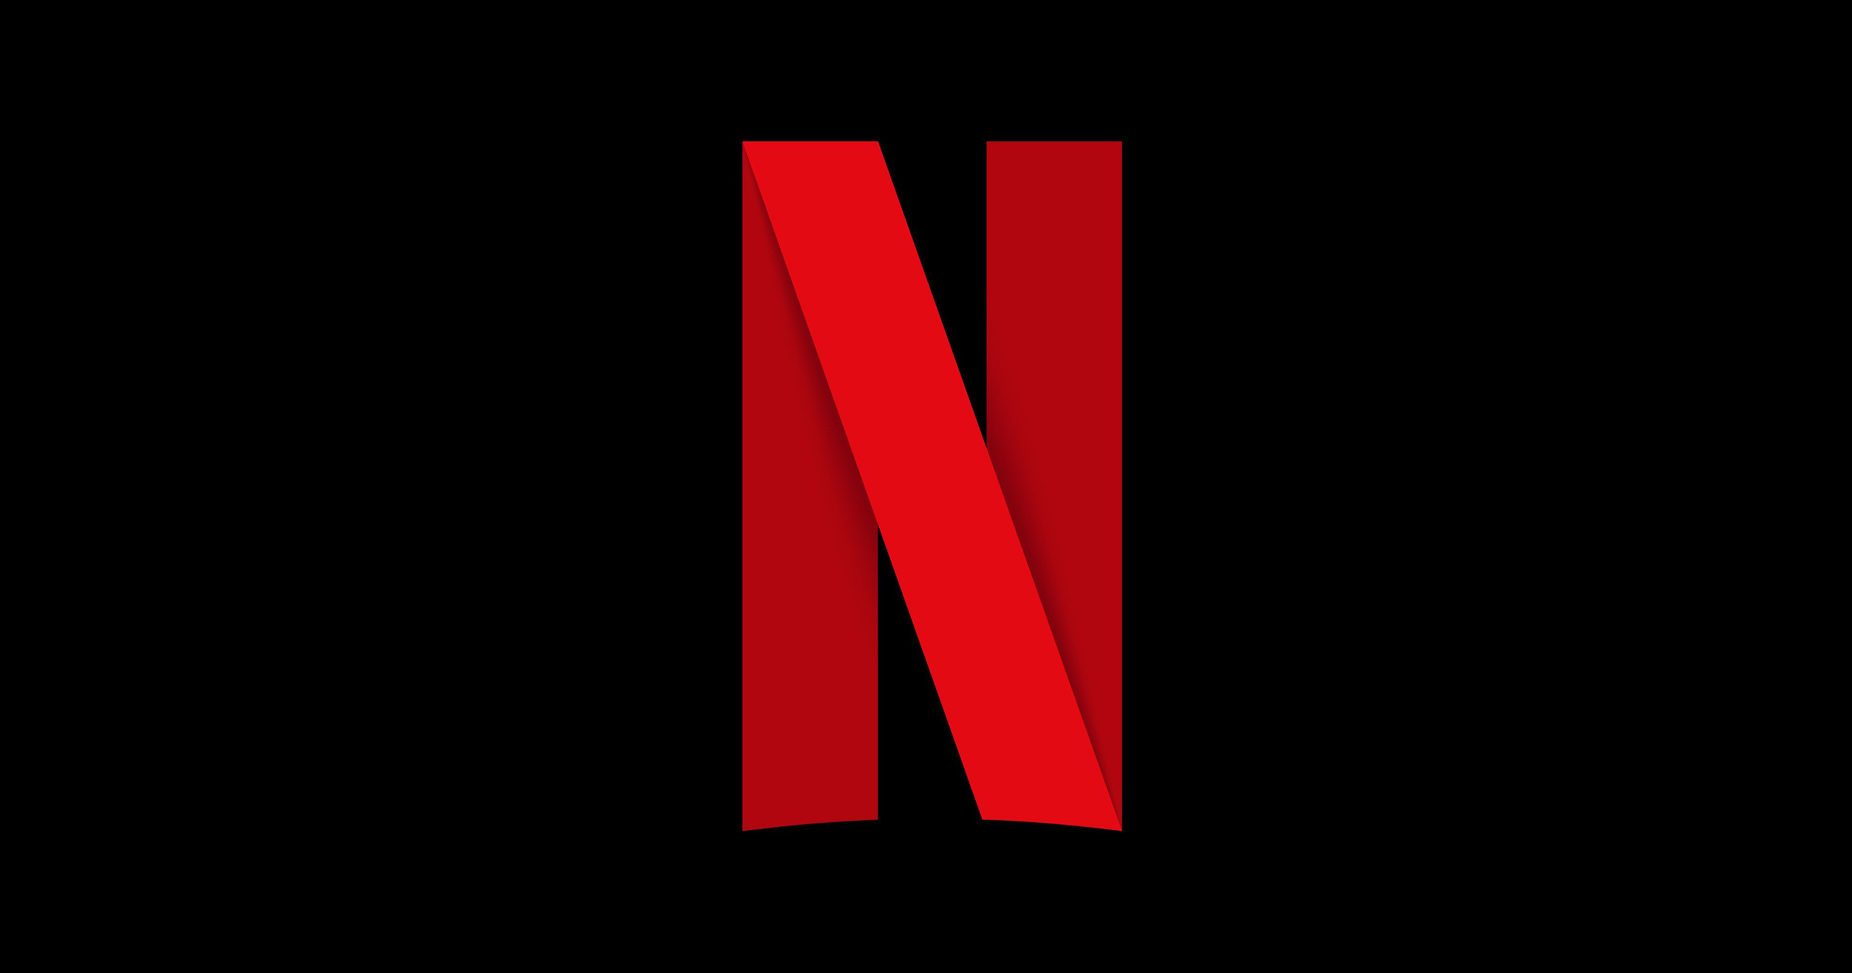 Netflix: Price Increase/Cracking Down on Password Sharing